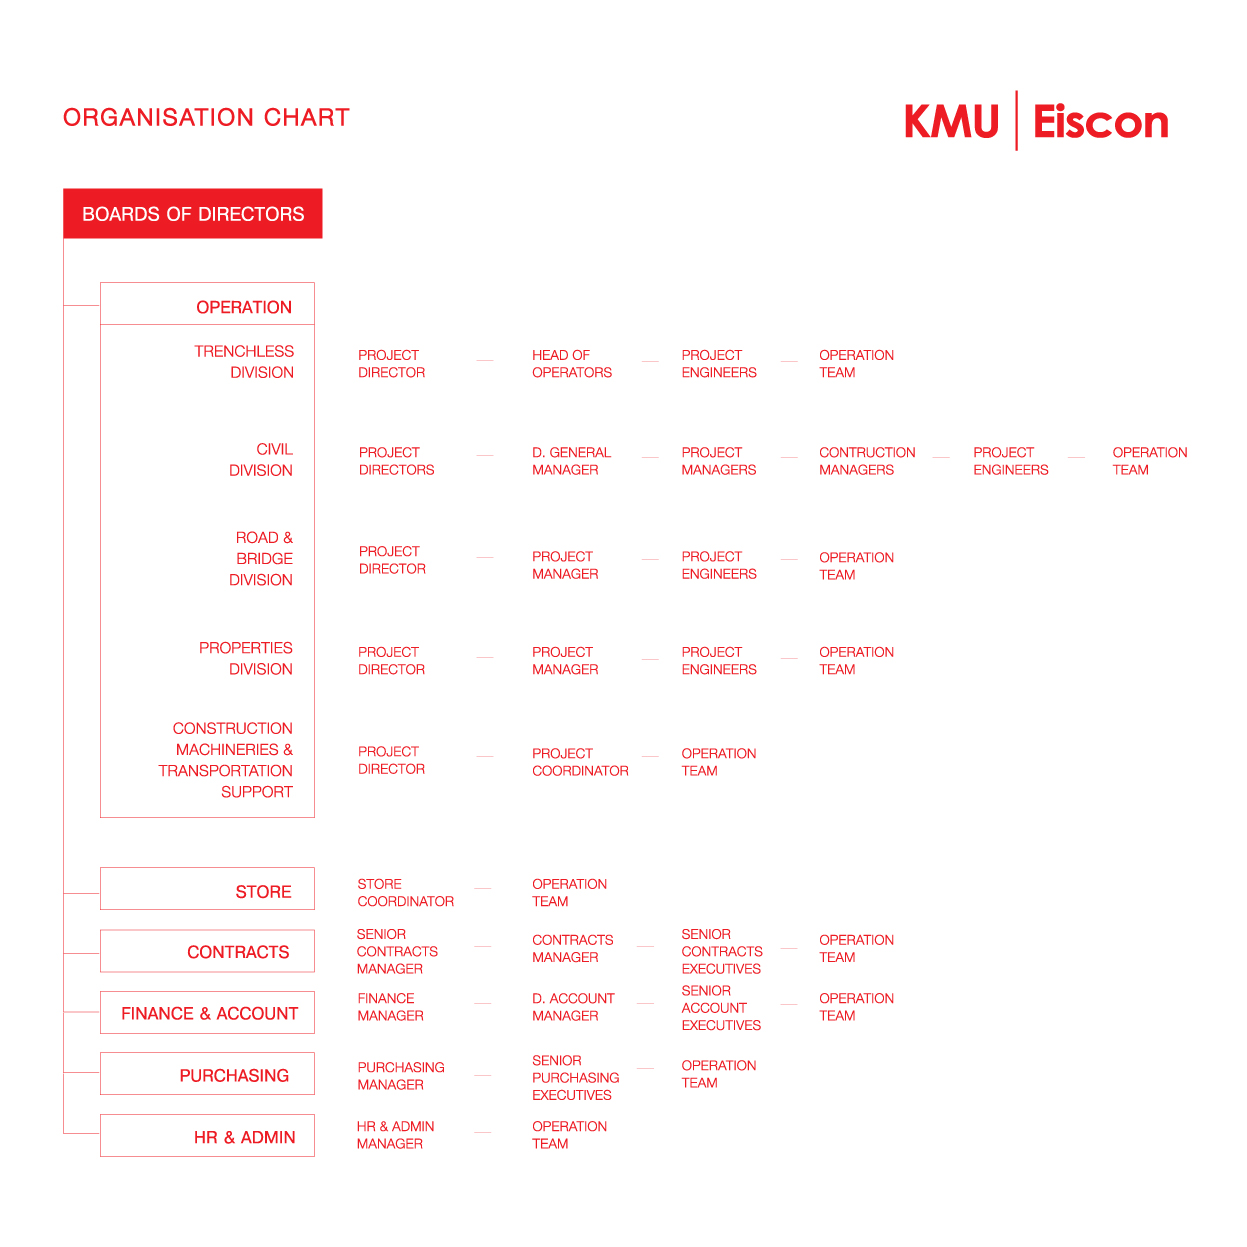 KMU Company Structure - Organisation Chart